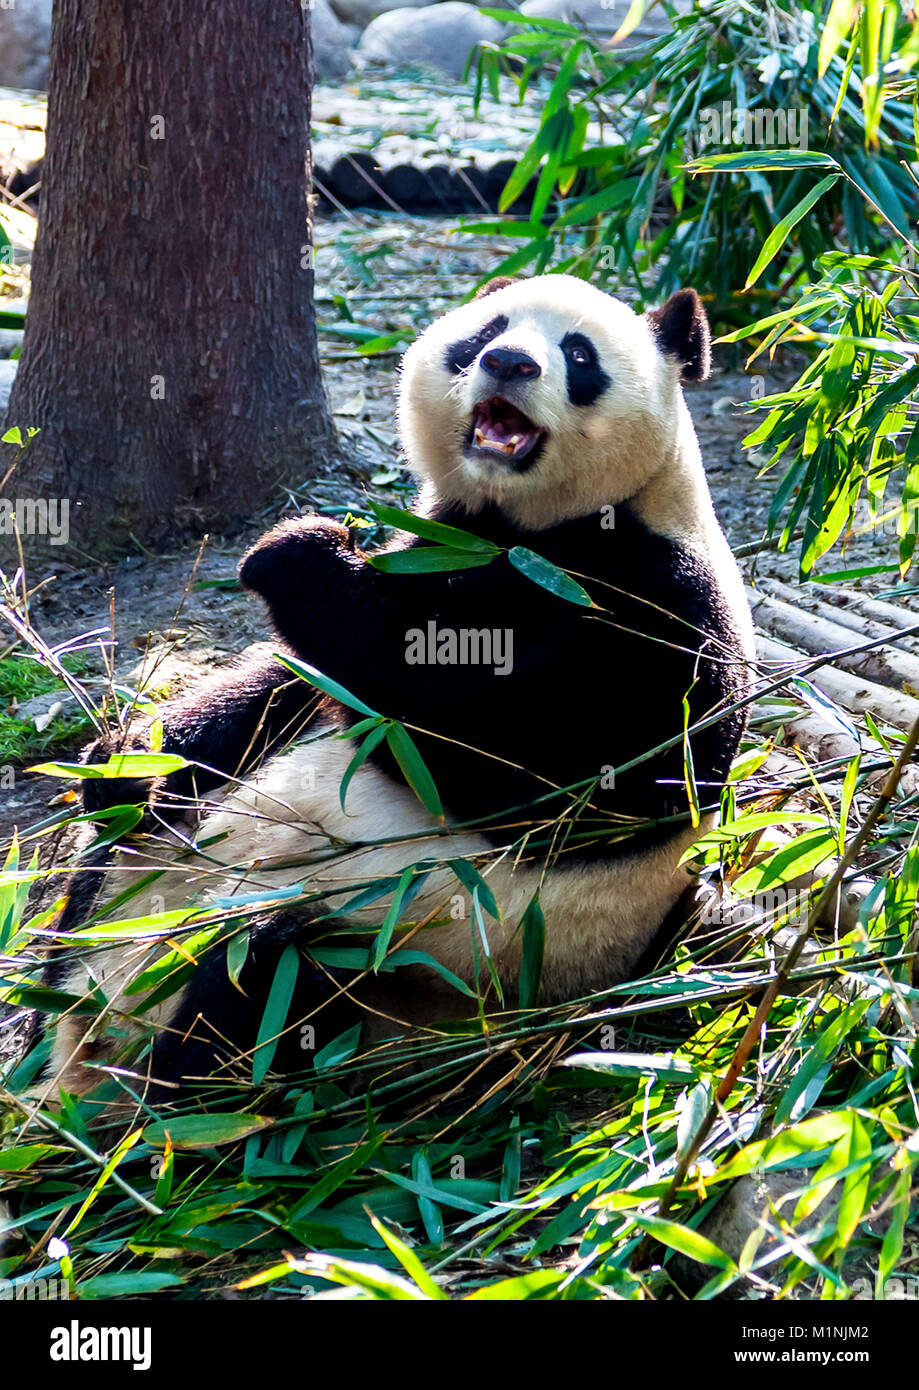 Panda is not amused by photographers at Chengdu Research Base of Giant Panda Breeding in China 2 - Stock Image